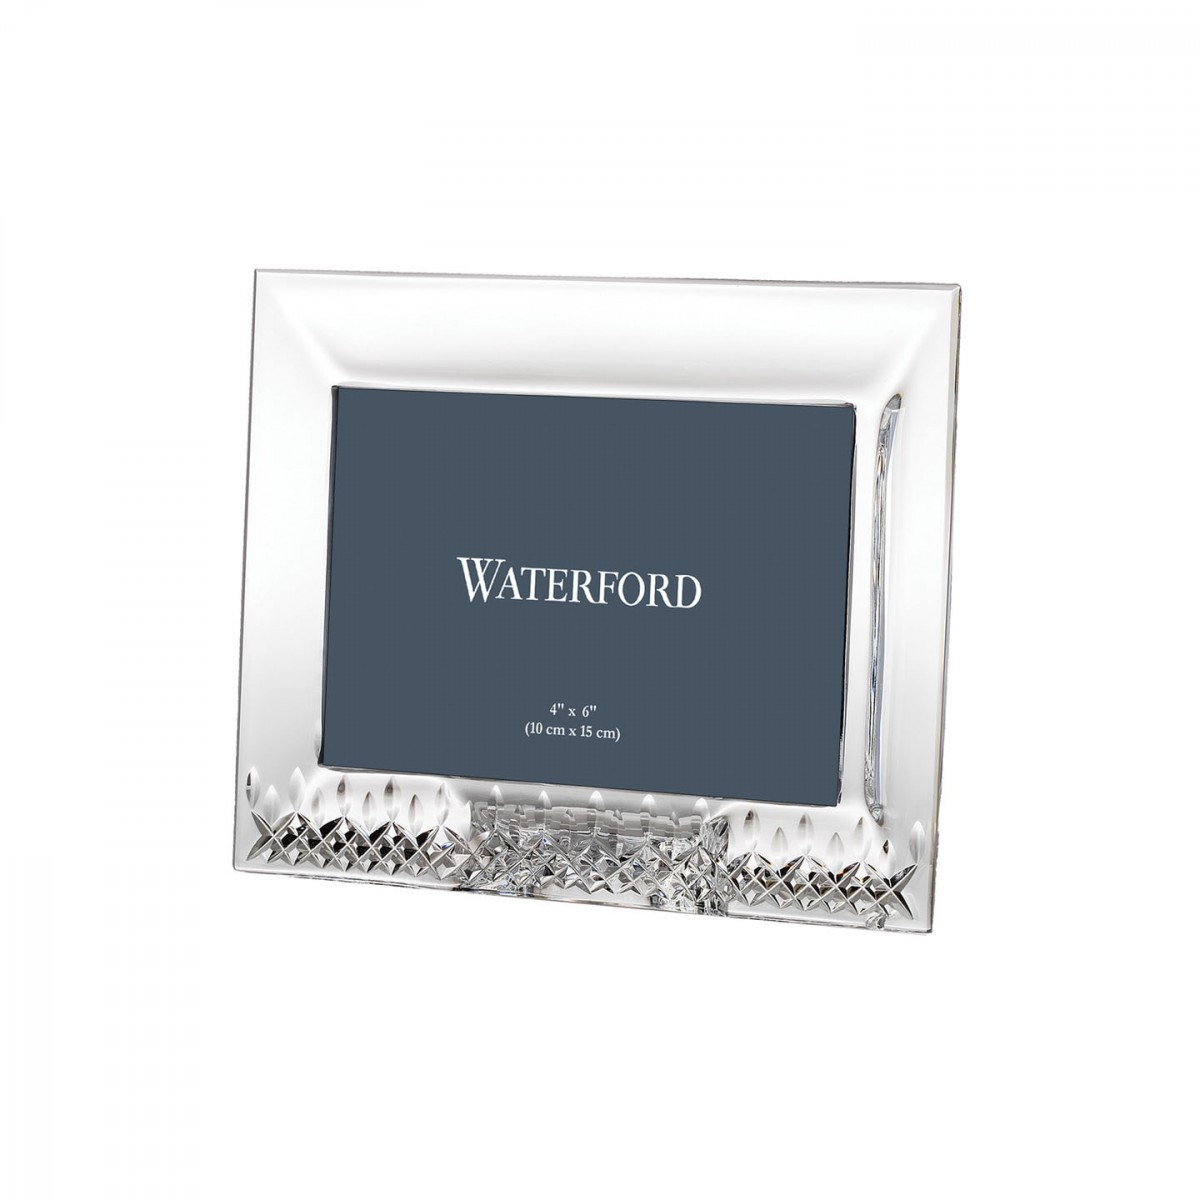 "Waterford Crystal, Lismore Essence 4x6"" Picture Frame, Horizontal"